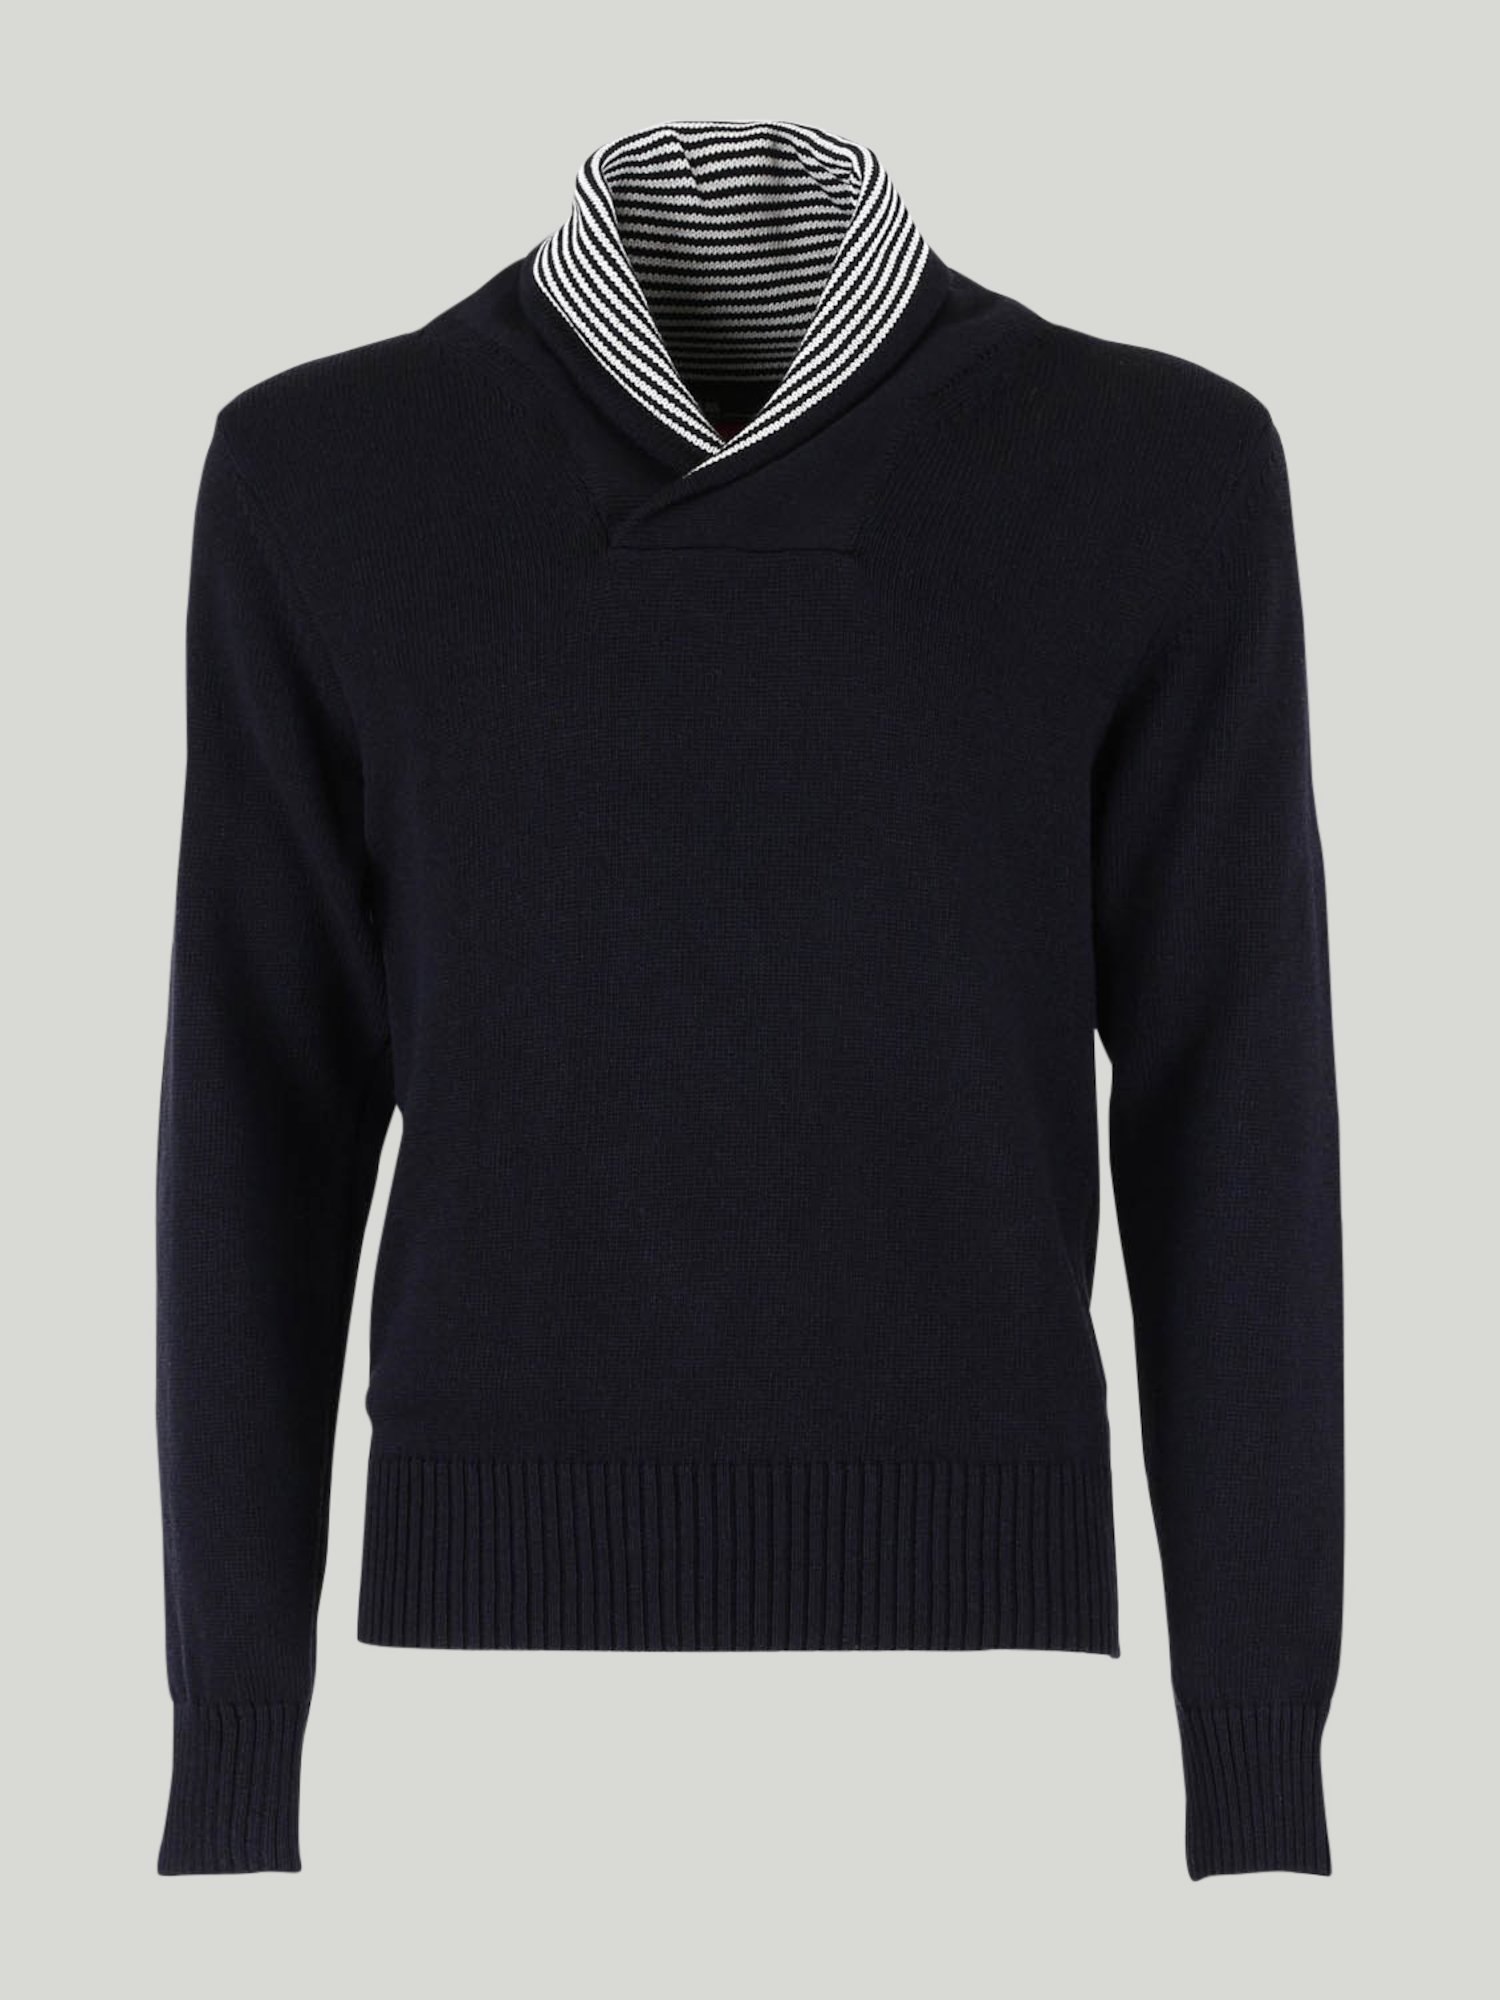 Babajaga Sweater - Navy